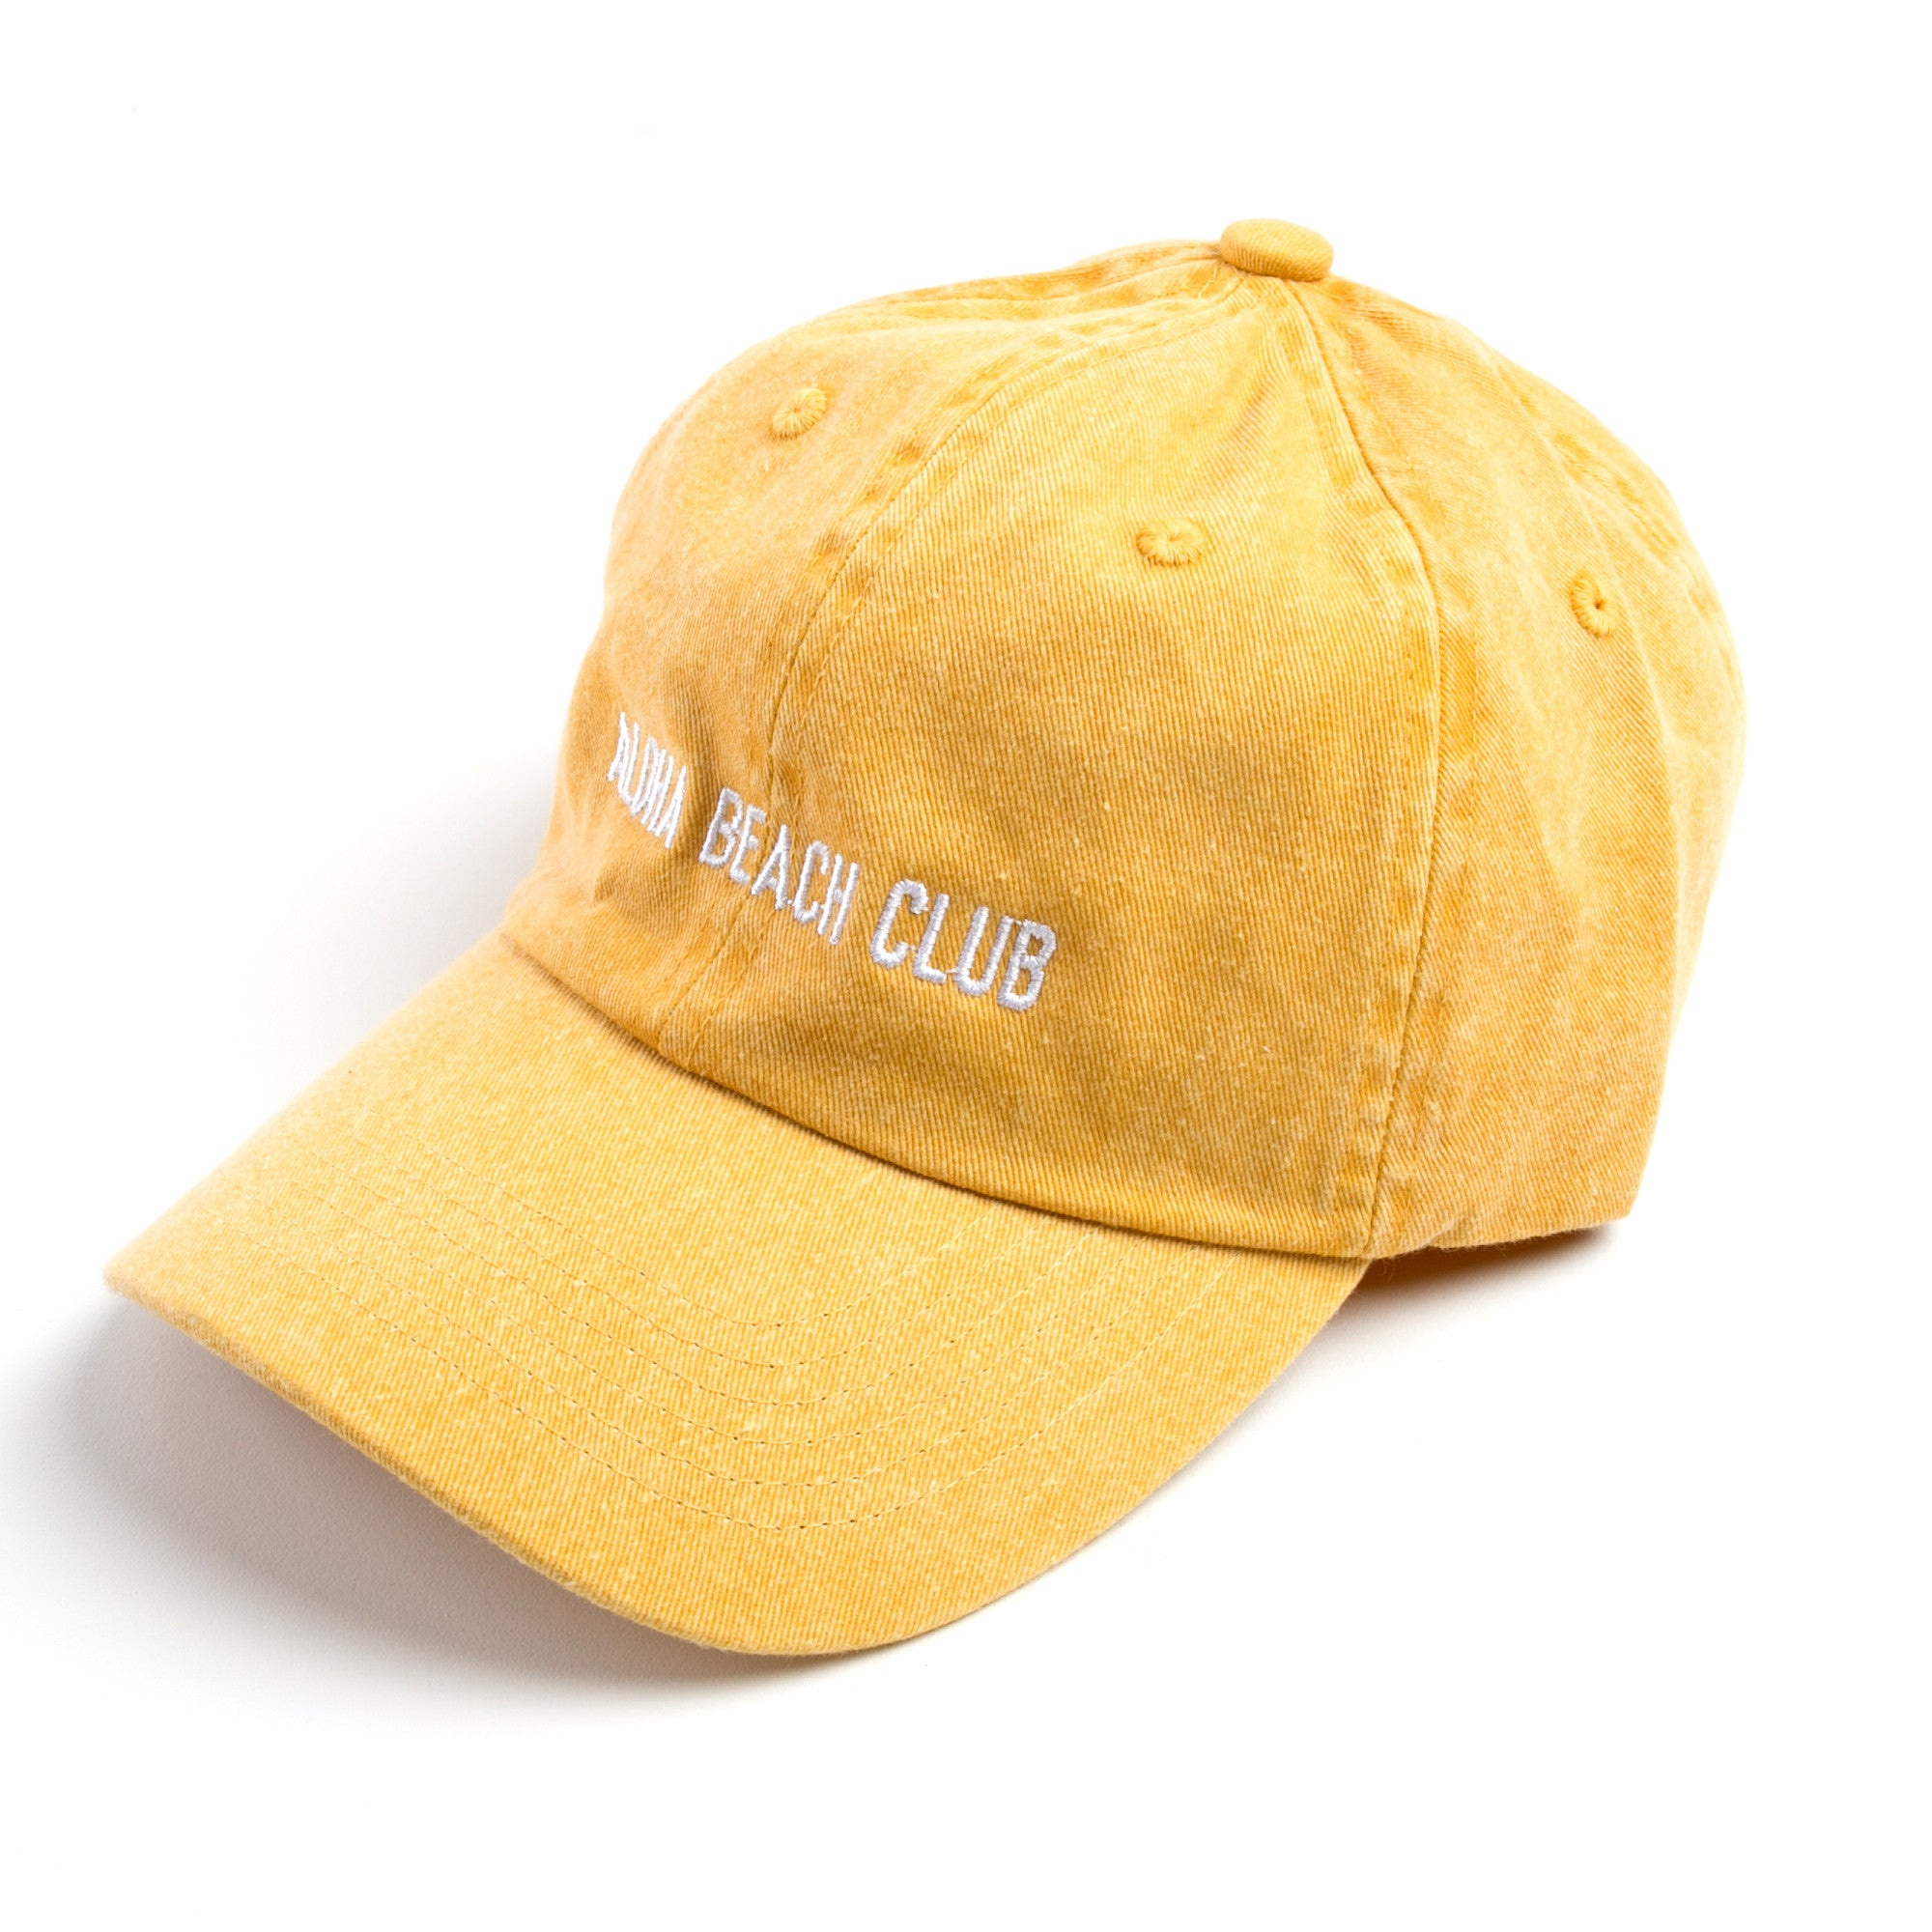 Aloha Beach Club - ABC Polo Cap Washed Gold - Aloha Beach Club